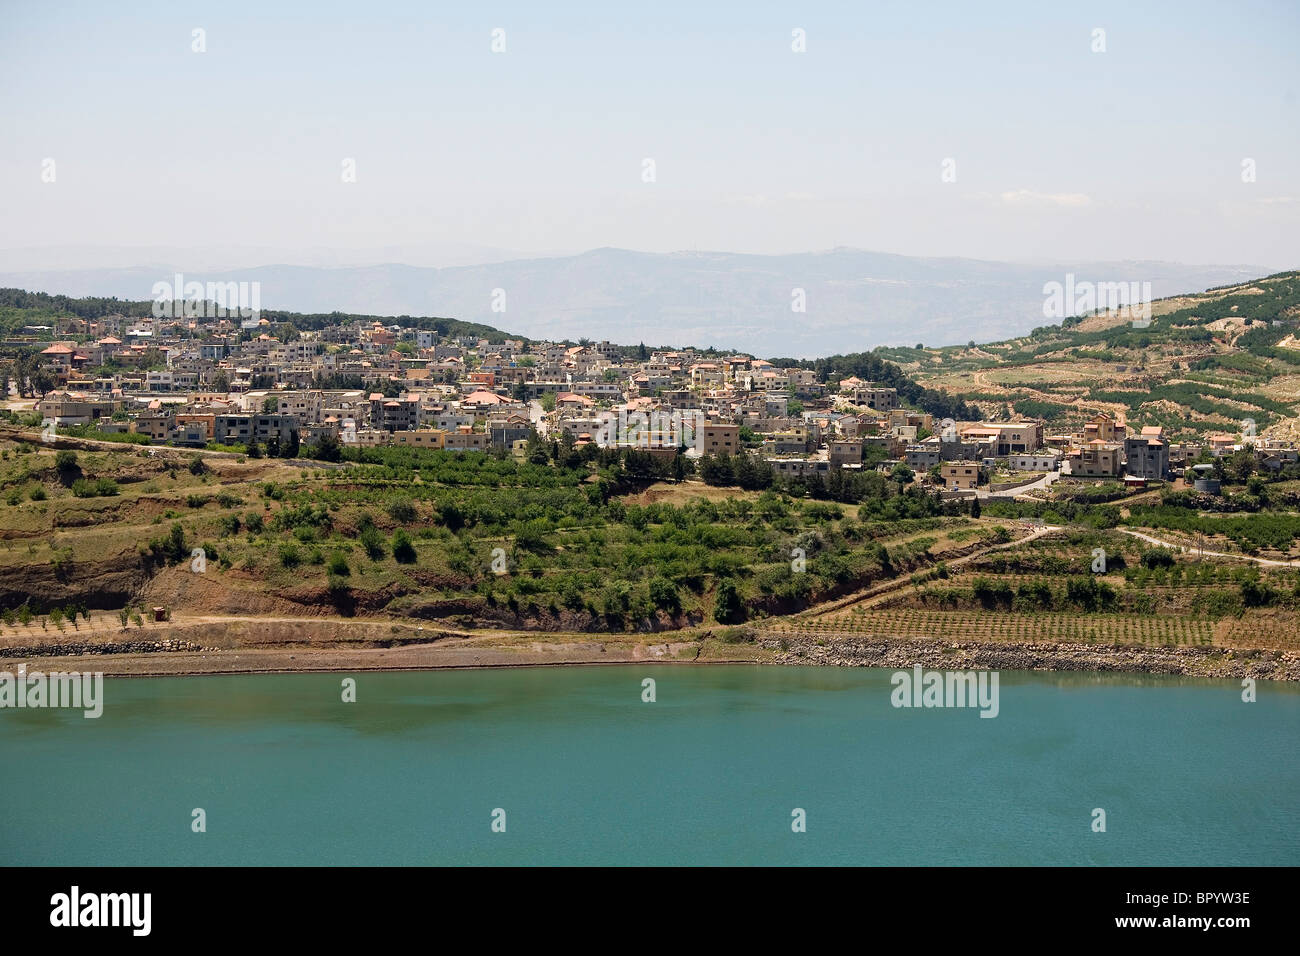 Aerial photograph of the Ram pool in the northern Golan Heights - Stock Image